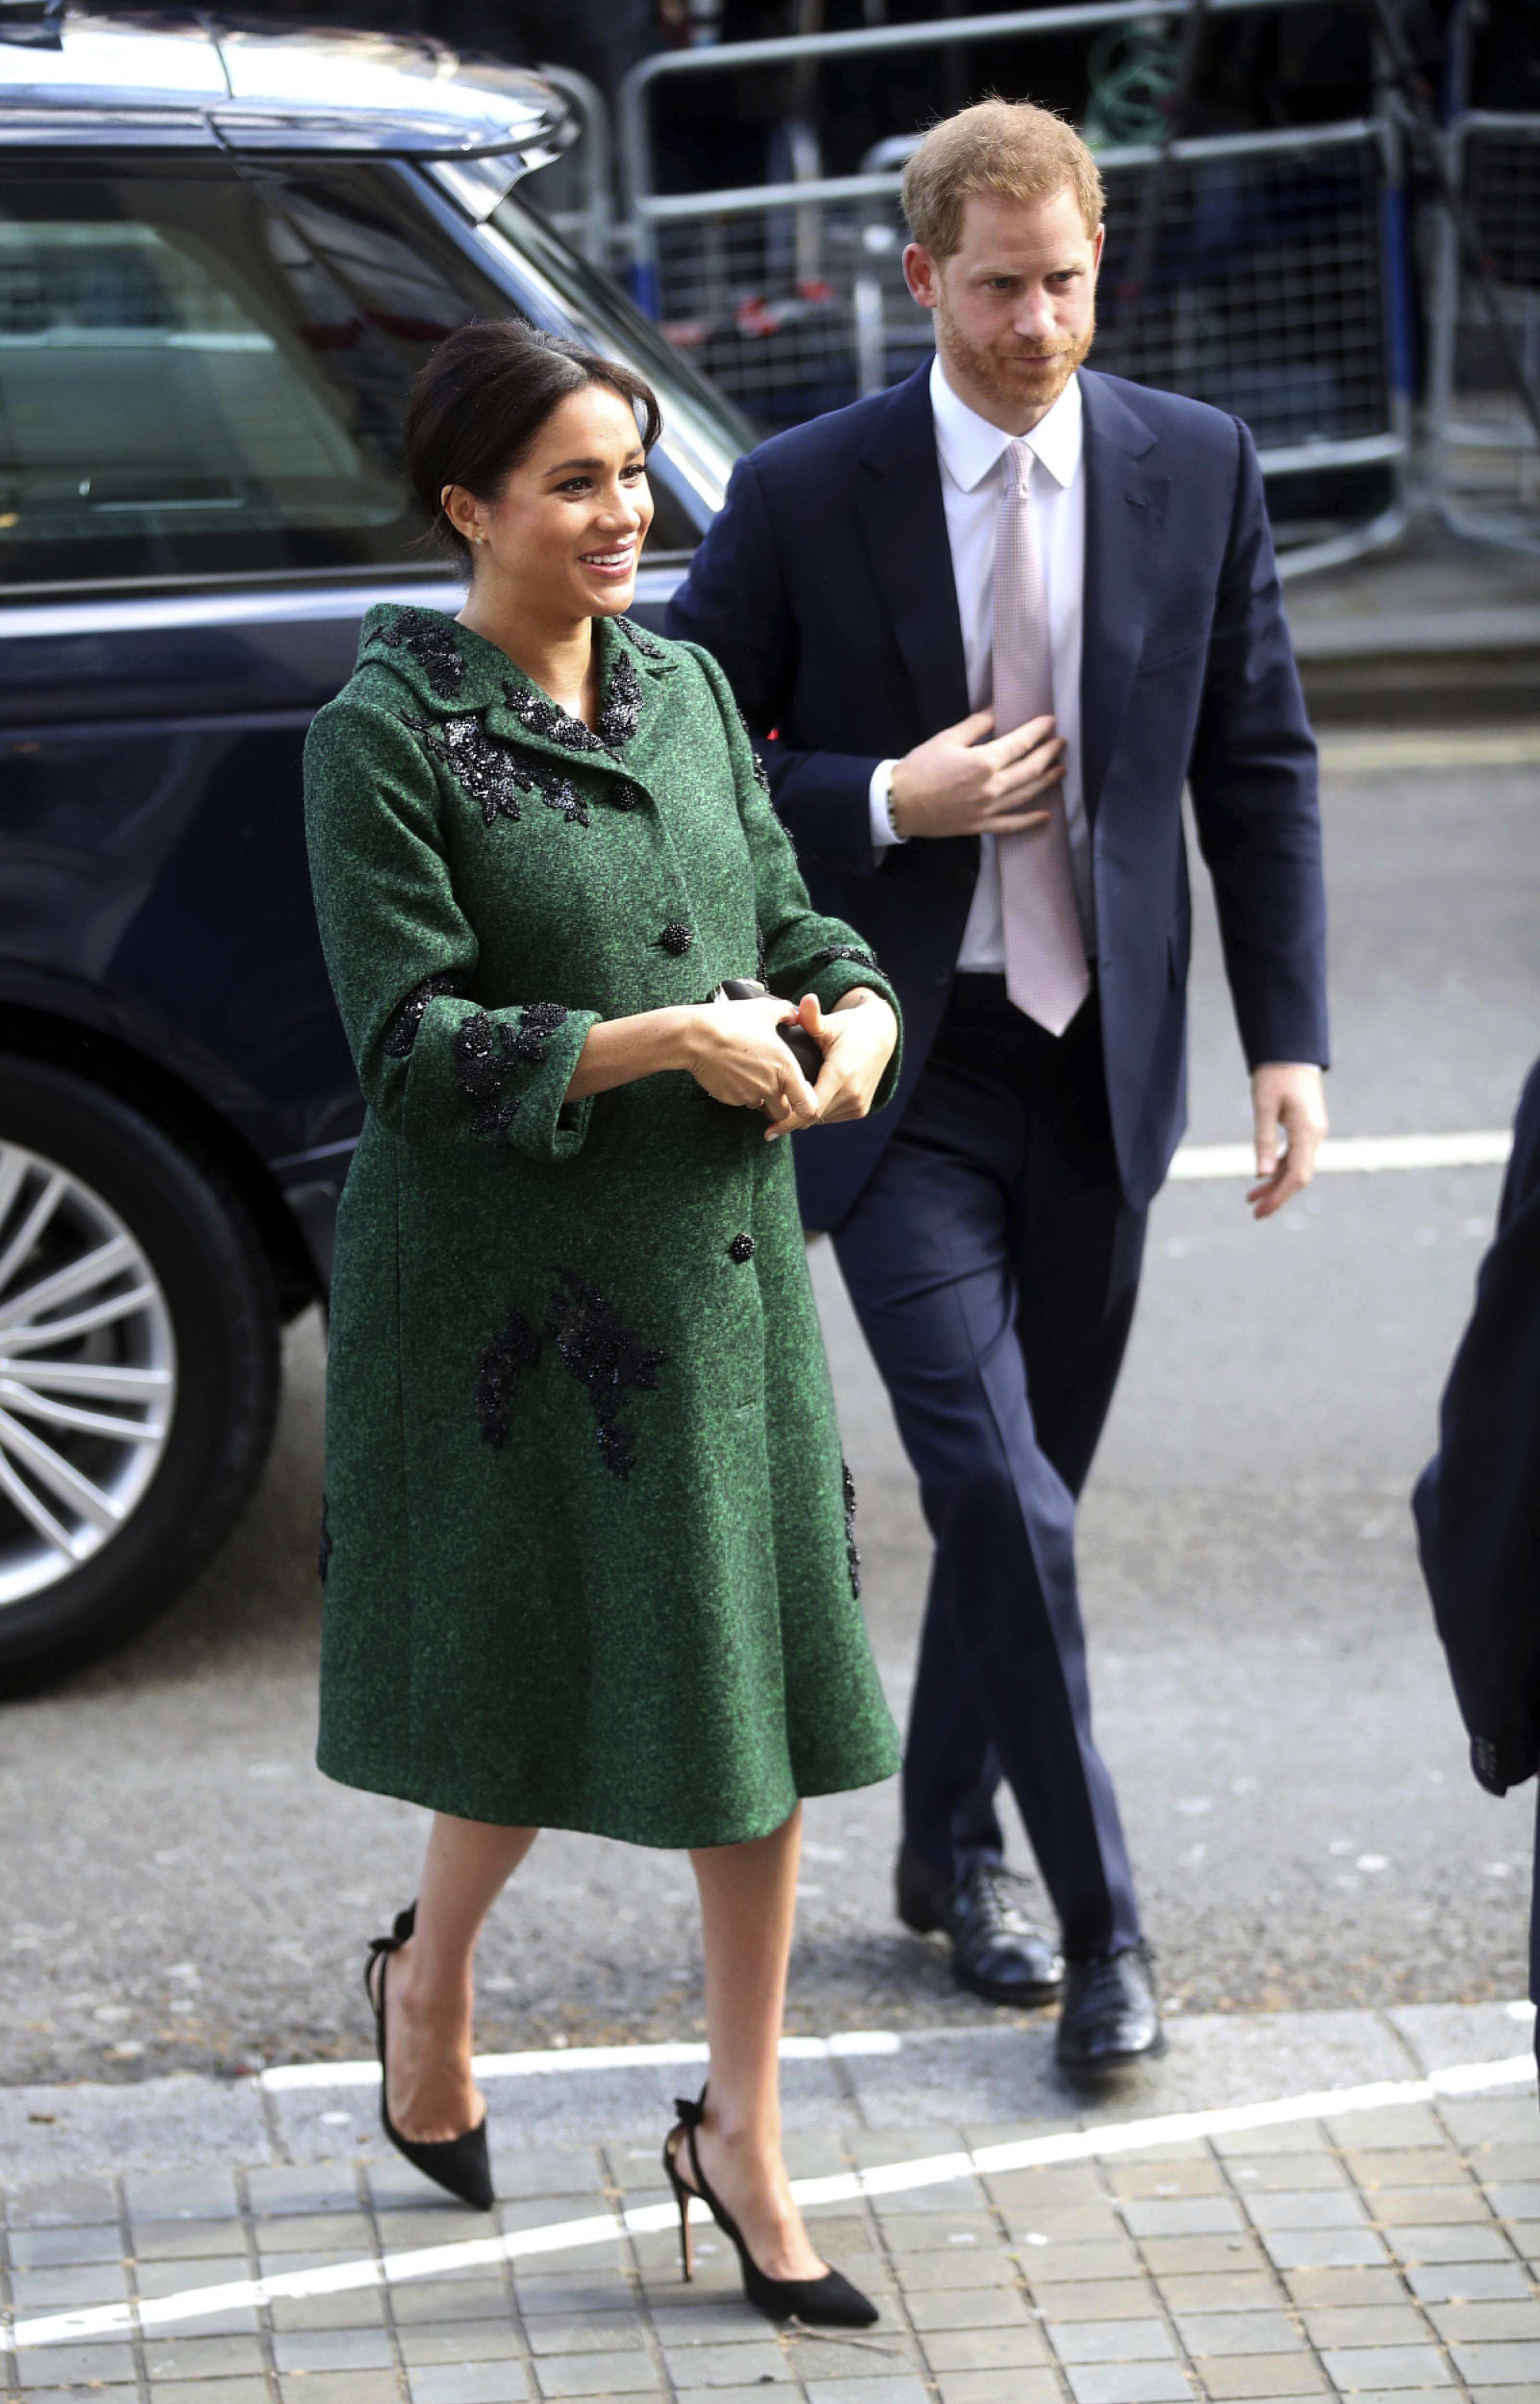 Britain's Prince Harry and Meghan, Duchess of Sussex arrive for the Commonwealth Day Youth Event at Canada House